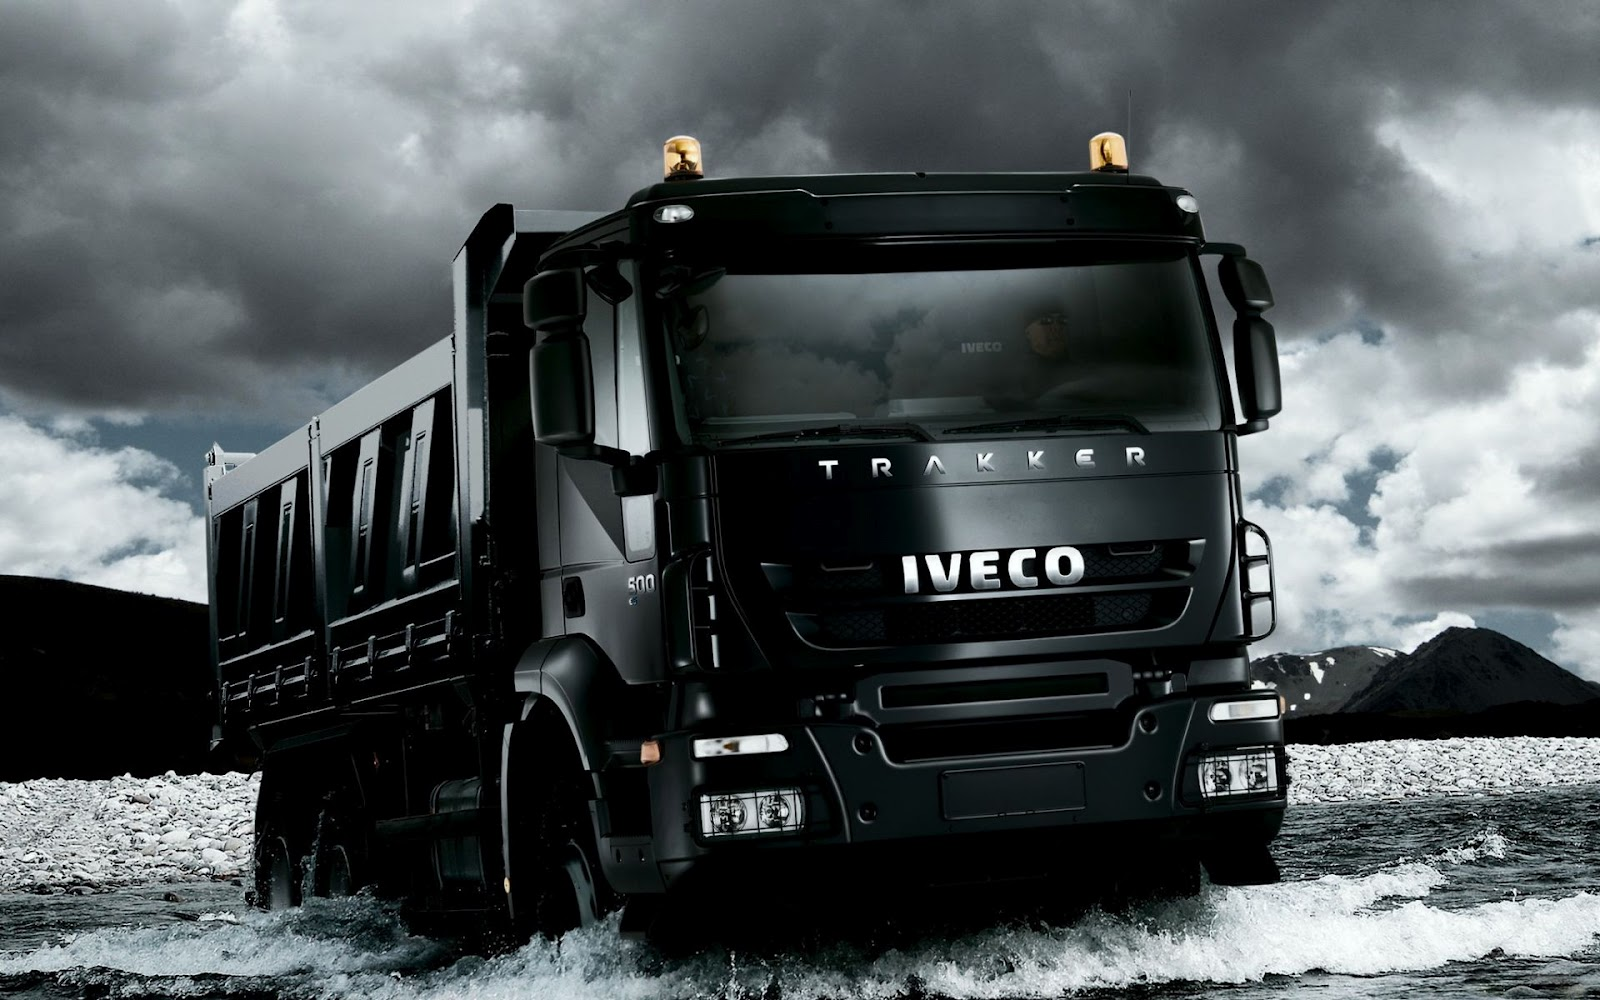 Black Iveco Trakker Truck HD Desktop Wallpaper 1600x1000